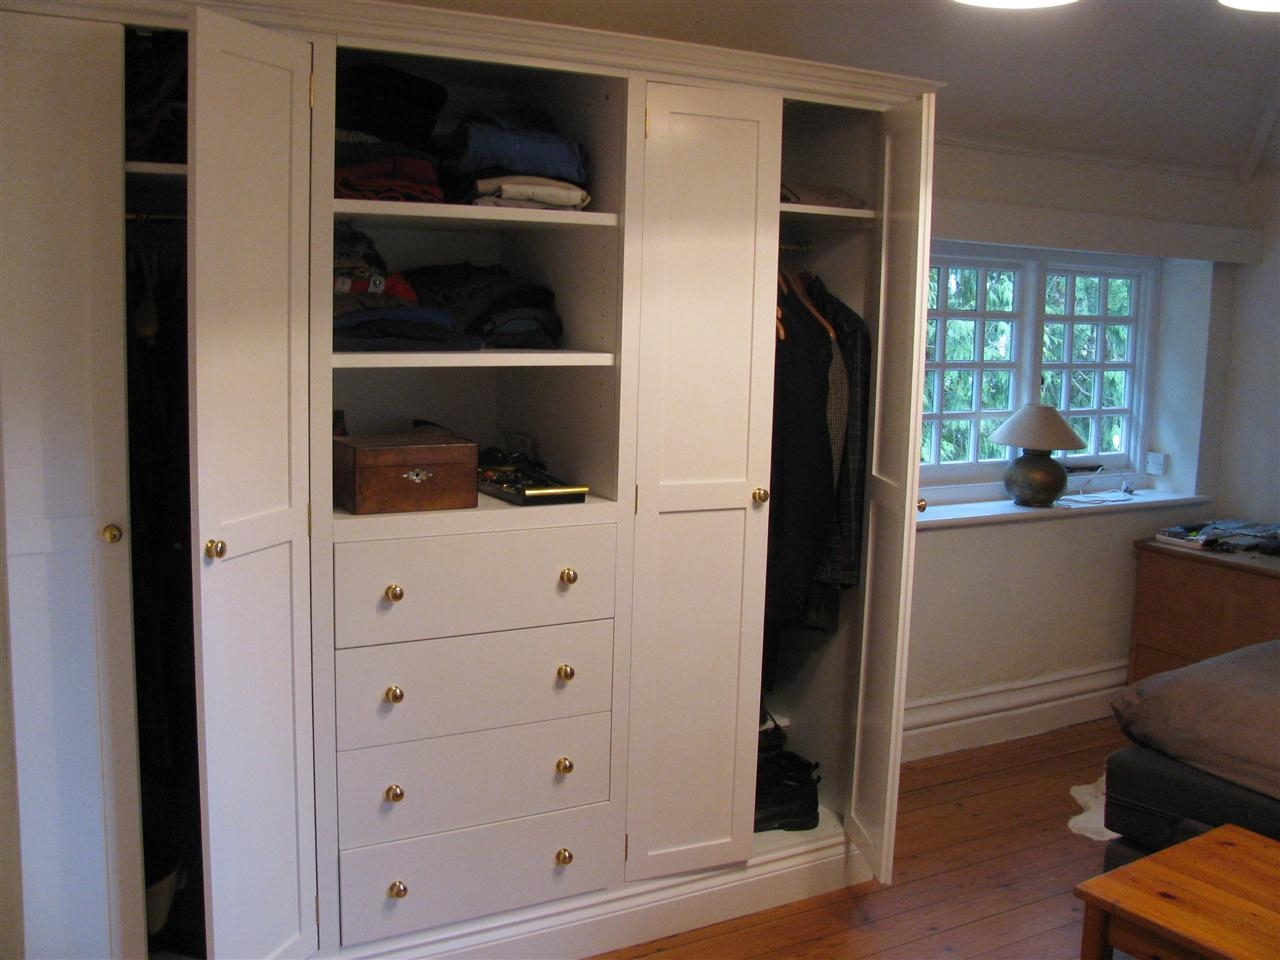 Wardrobes Regarding Wardrobe With Shelves And Drawers (Image 14 of 15)